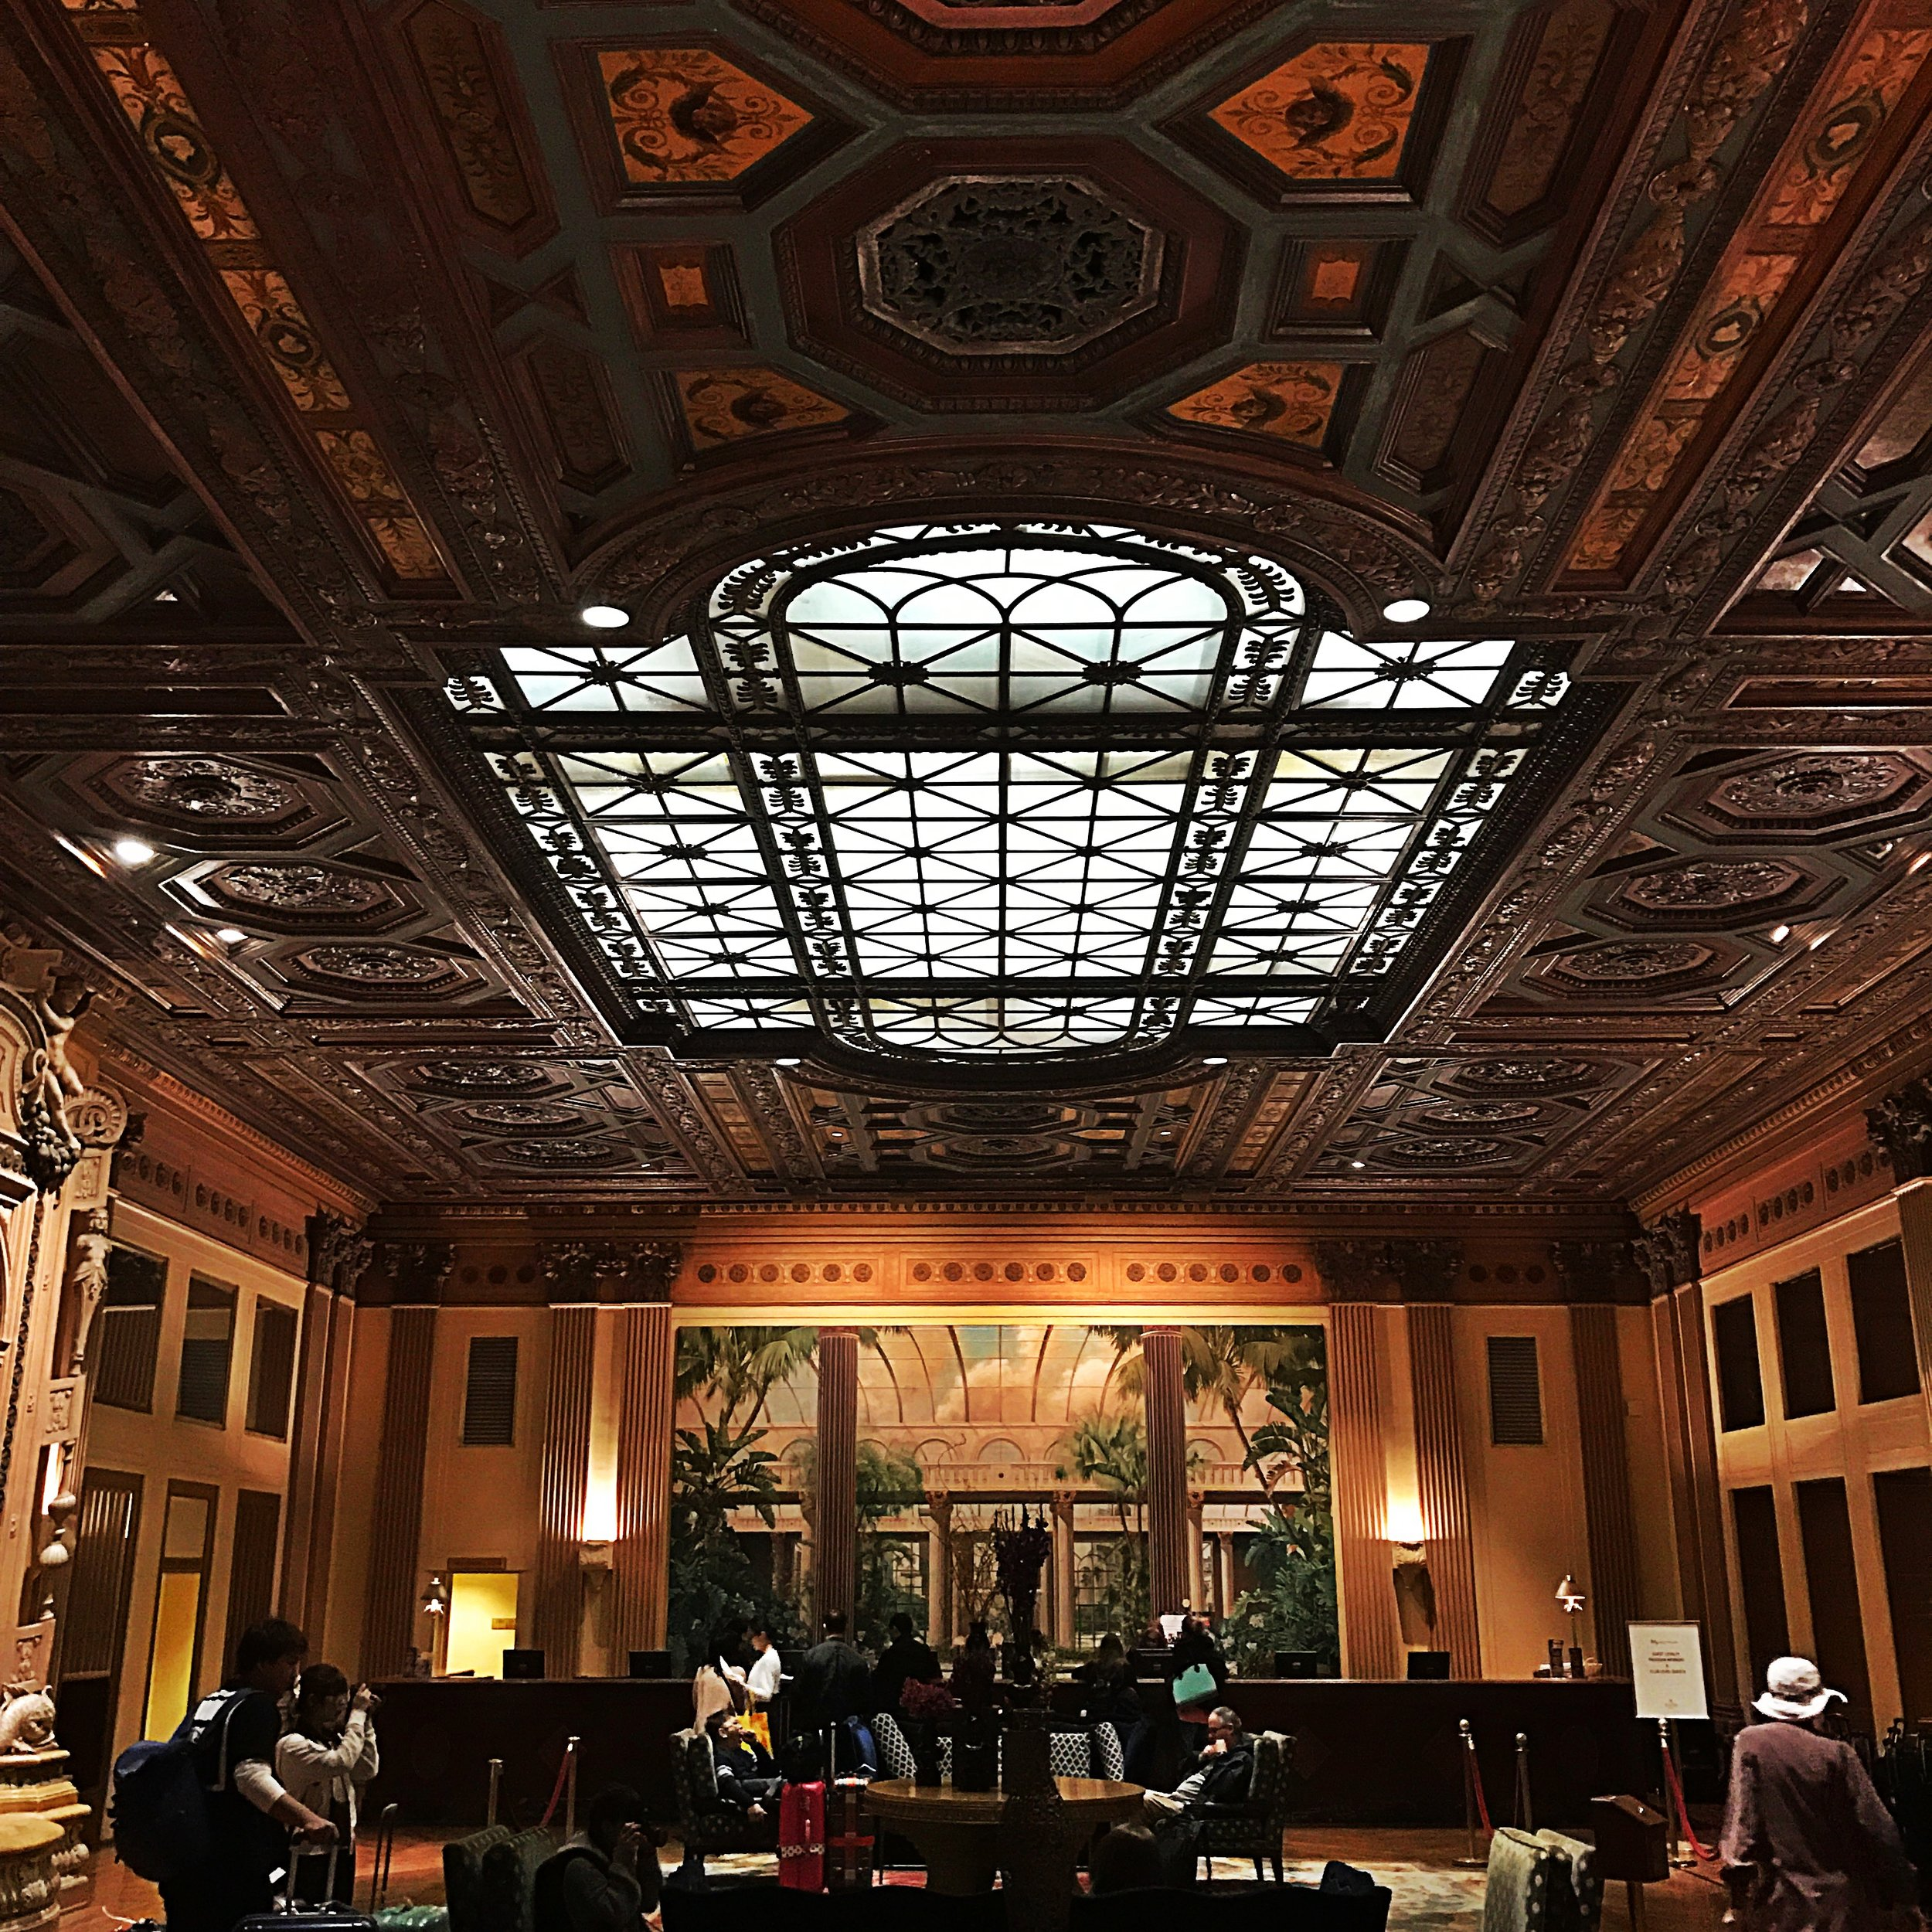 The Music Room, Biltmore Hotel